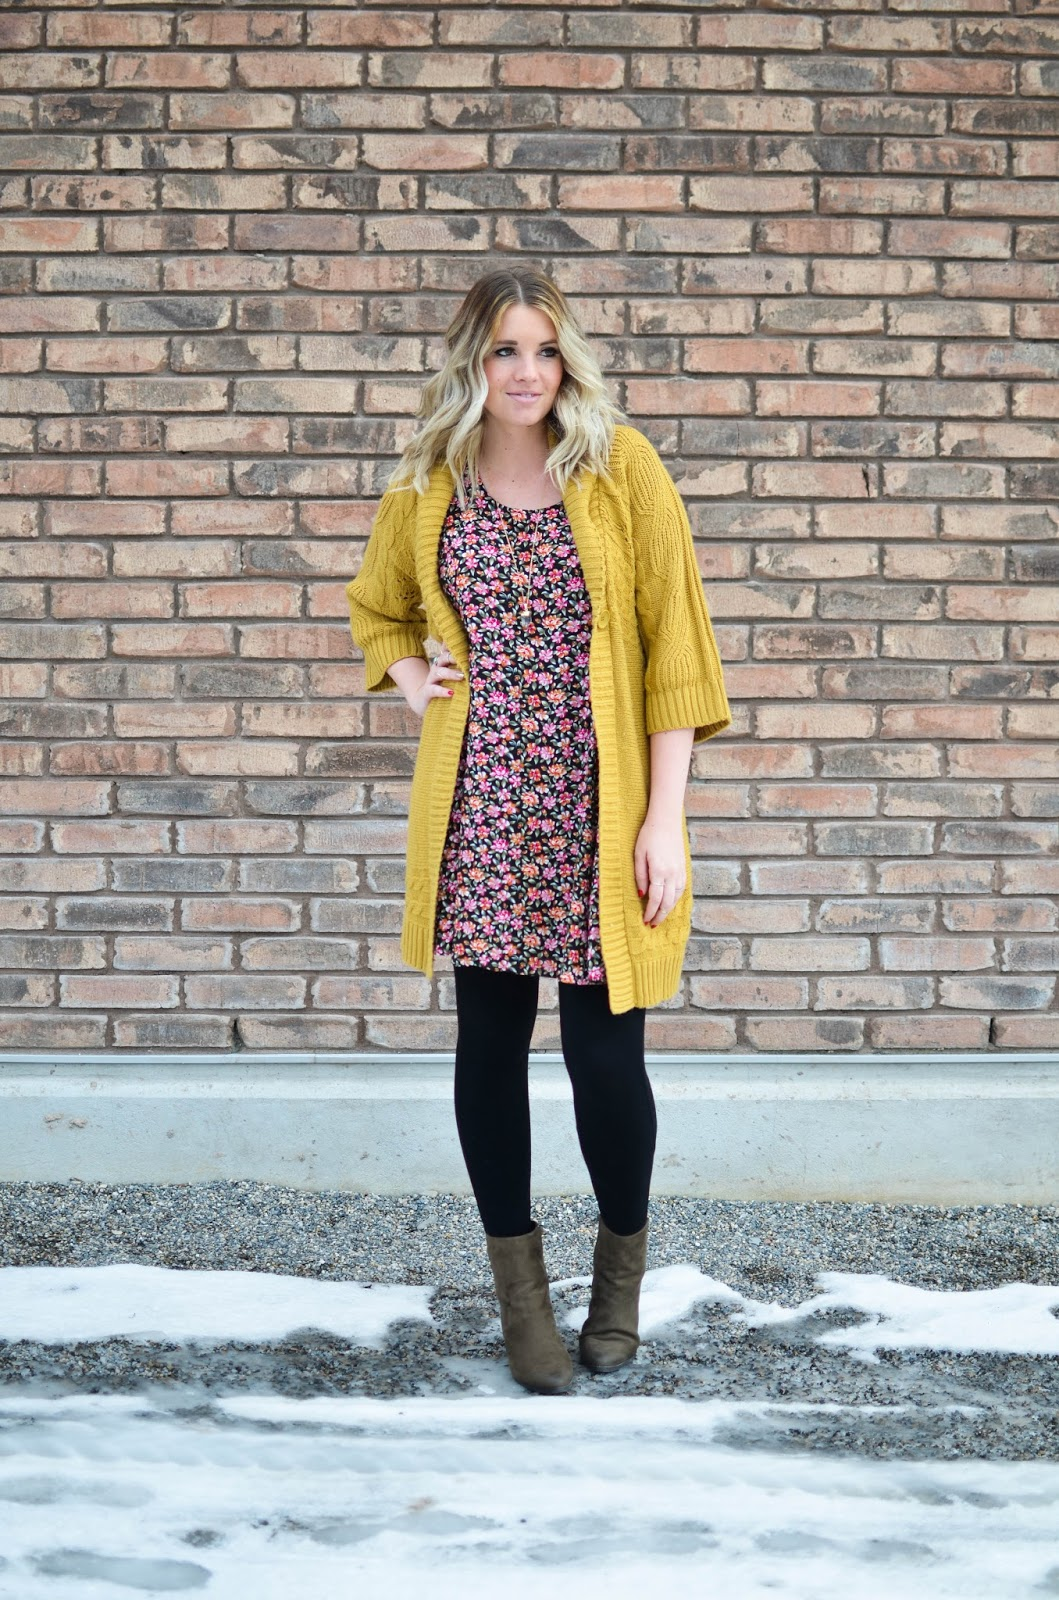 Floral Dress, Modest Outfit, Mustard Cardigan